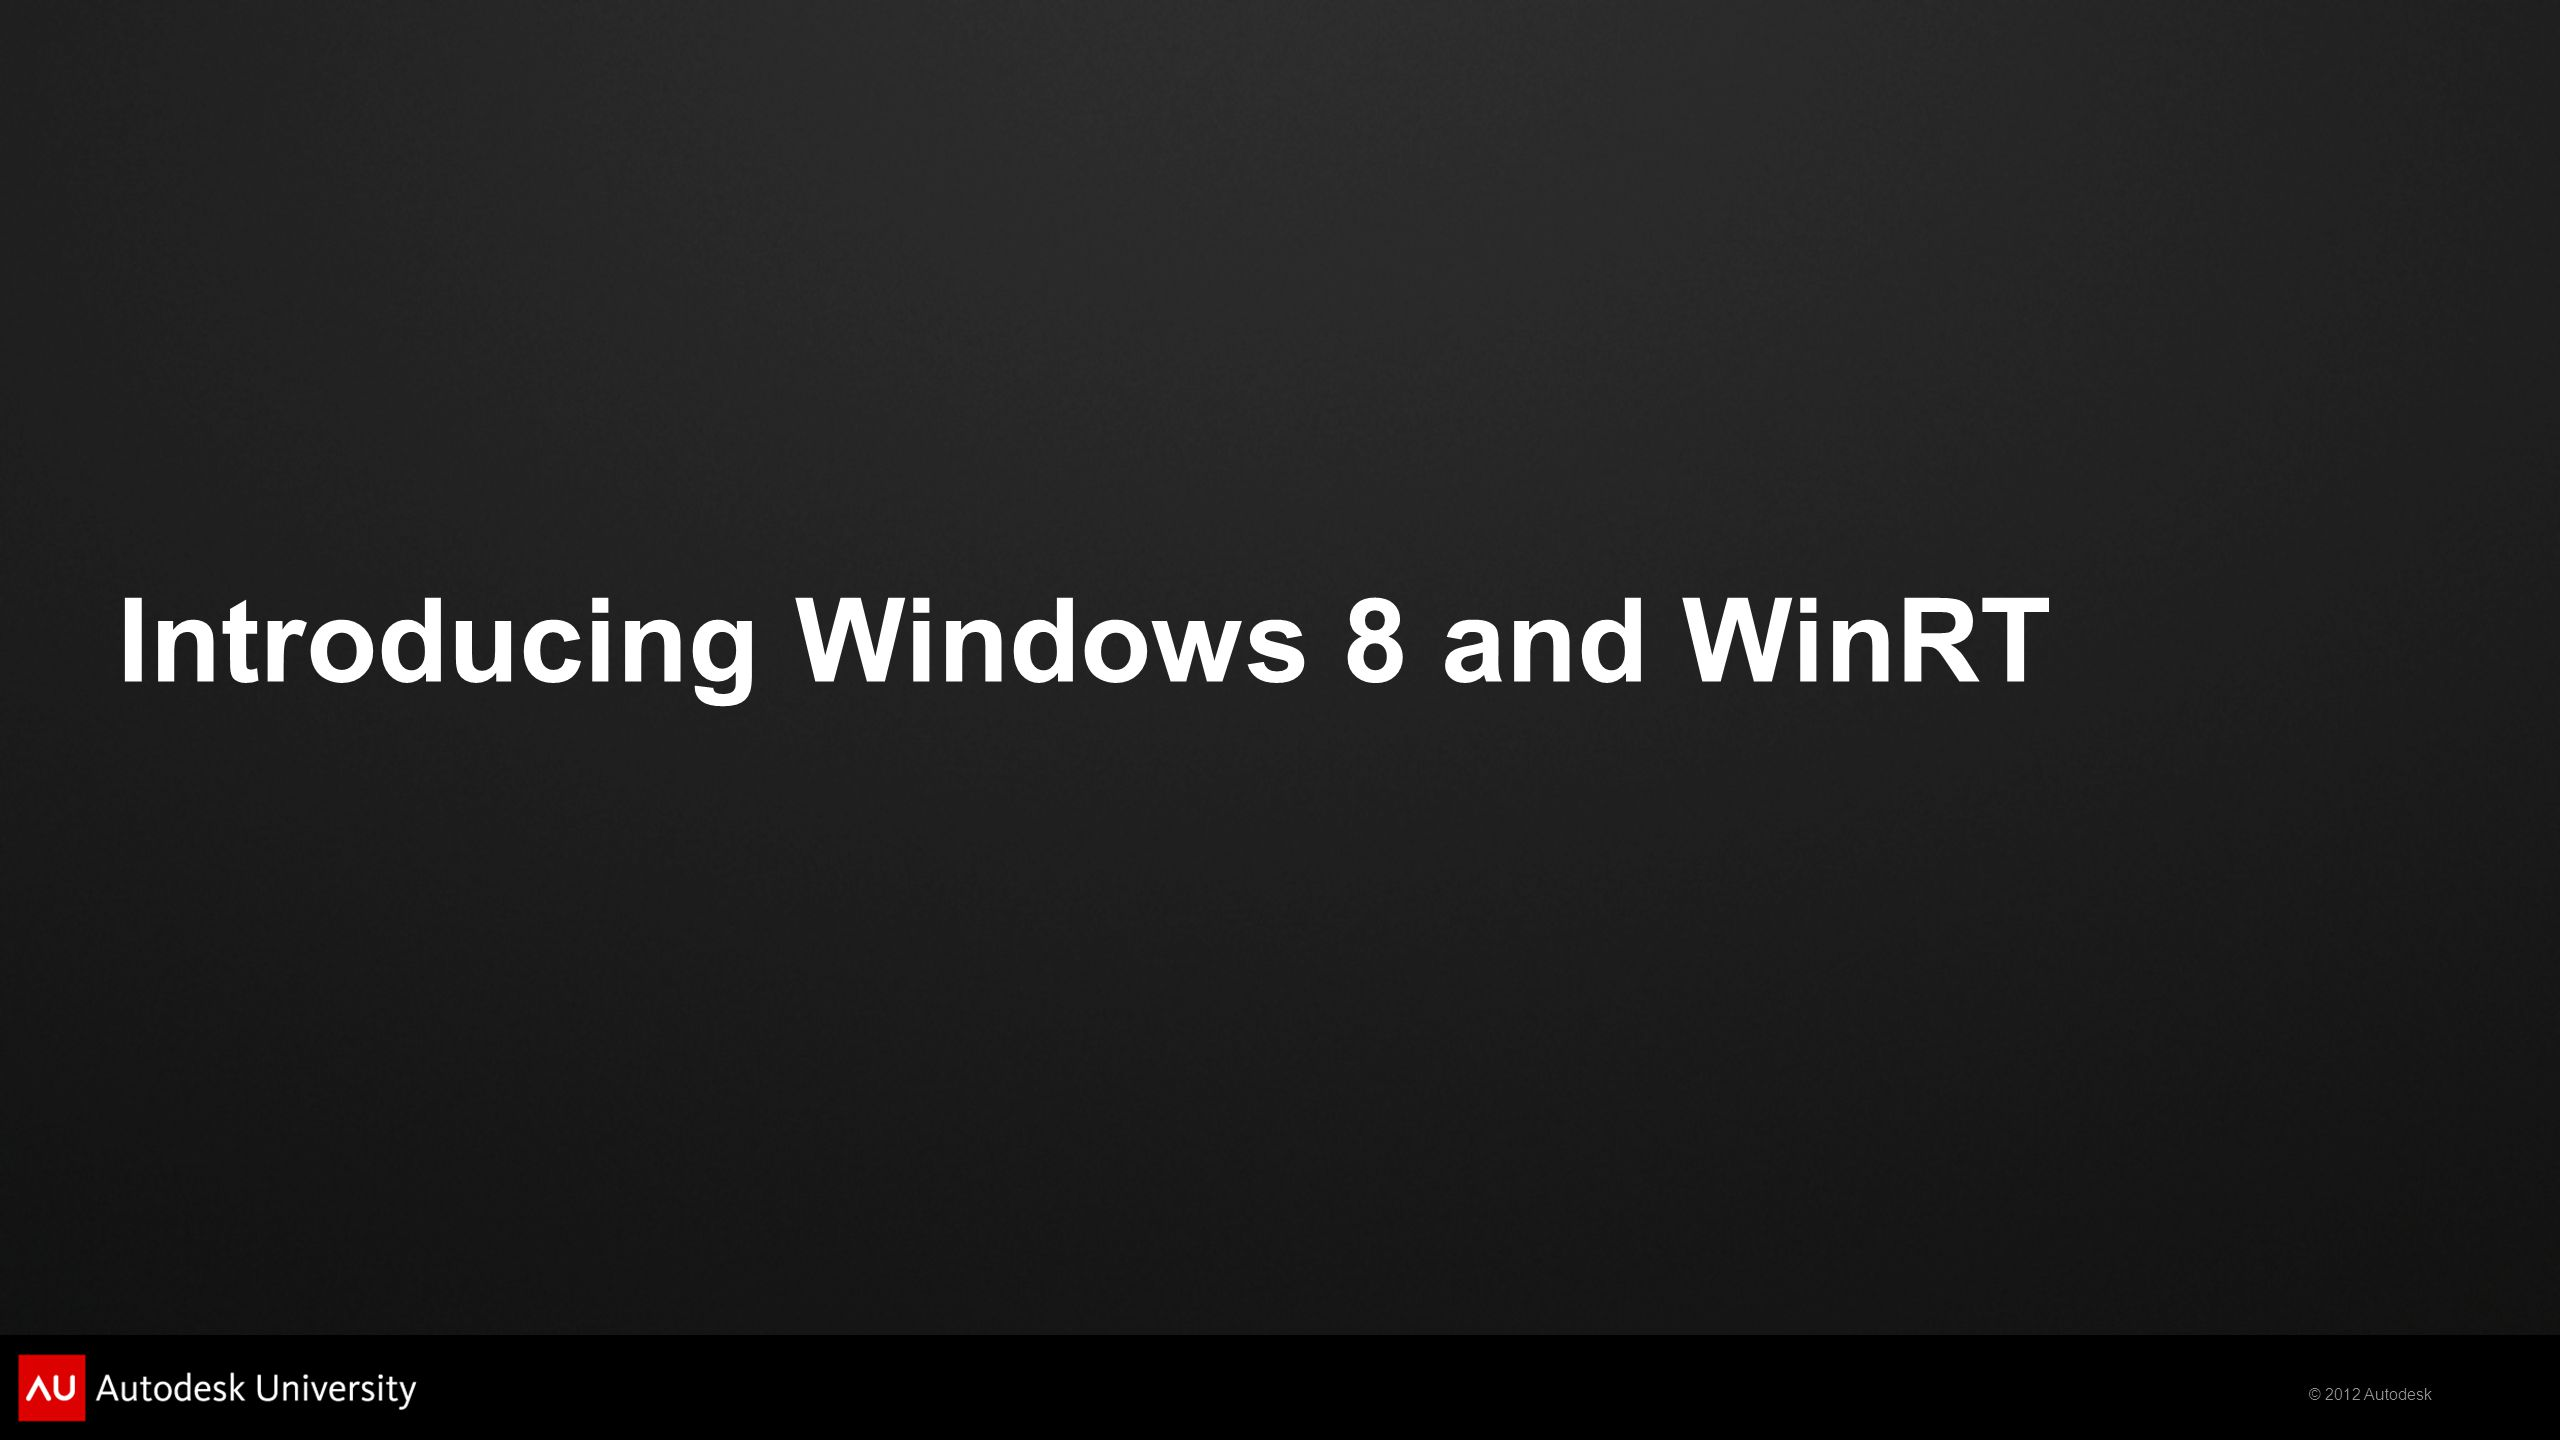 © 2012 Autodesk Introducing Windows 8 and WinRT